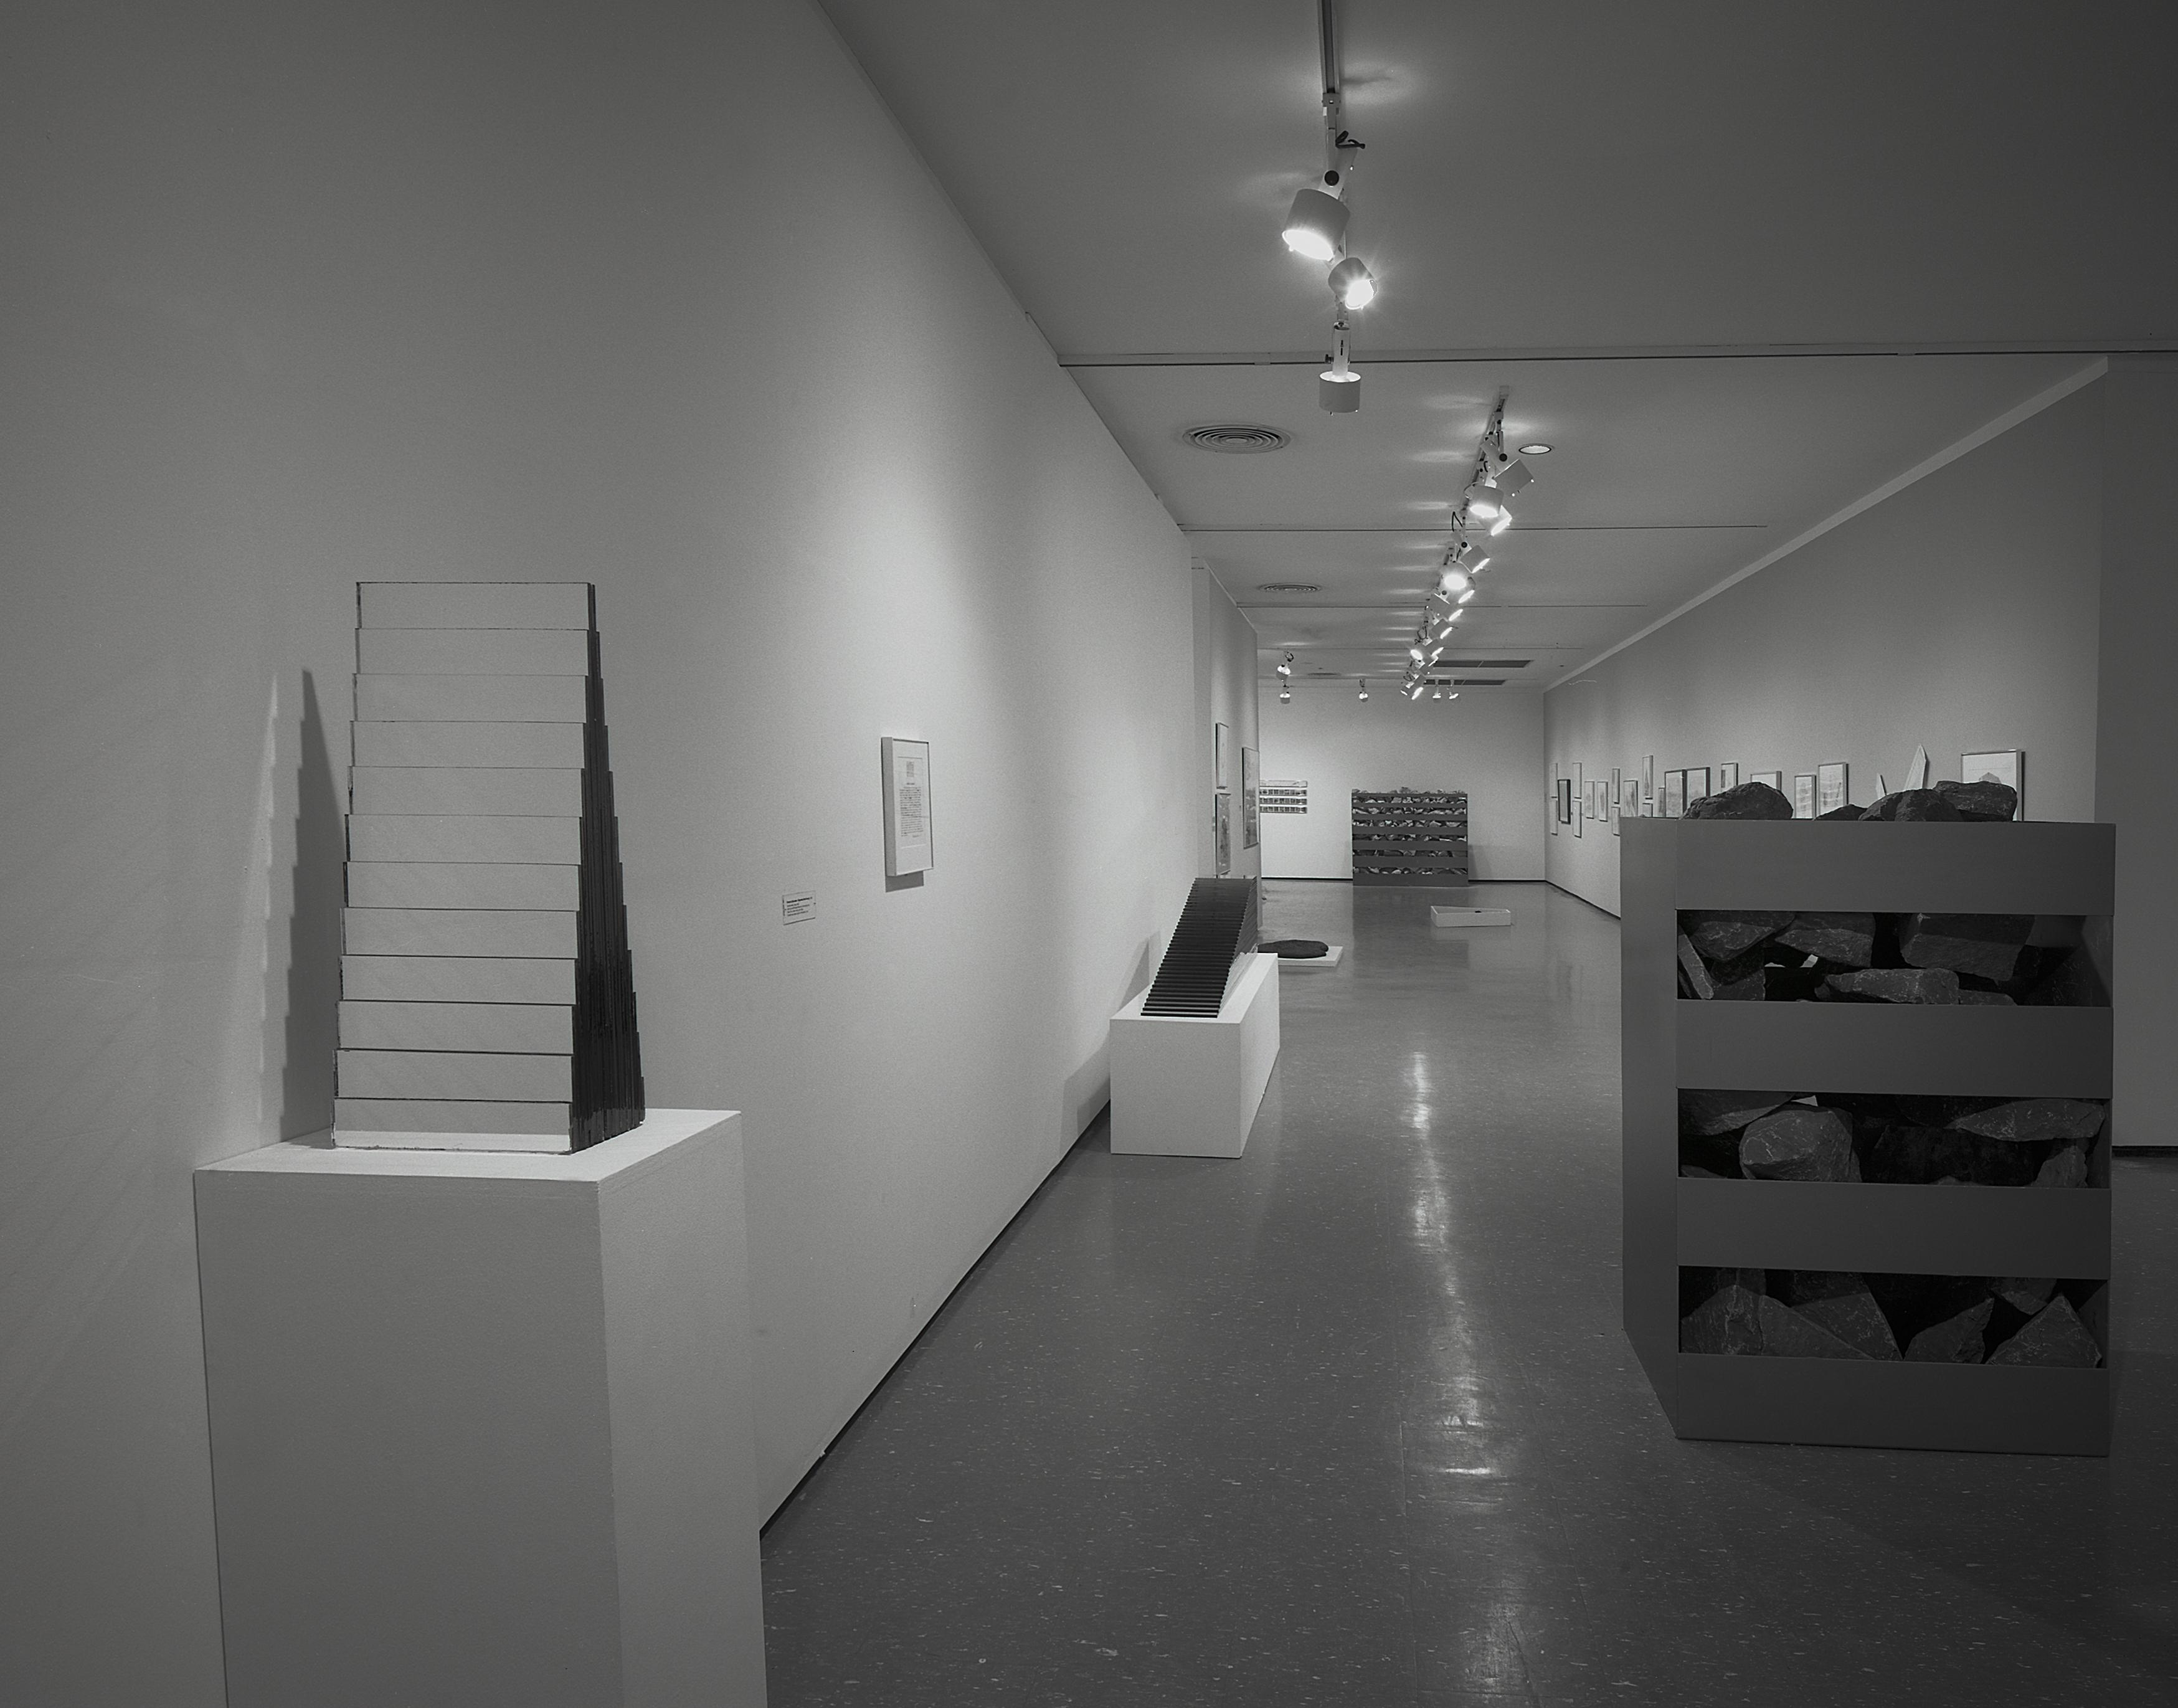 Black-and-white installation view of sculptures, including a stepped pyramid form and a crate-like sculpture filled with rocks